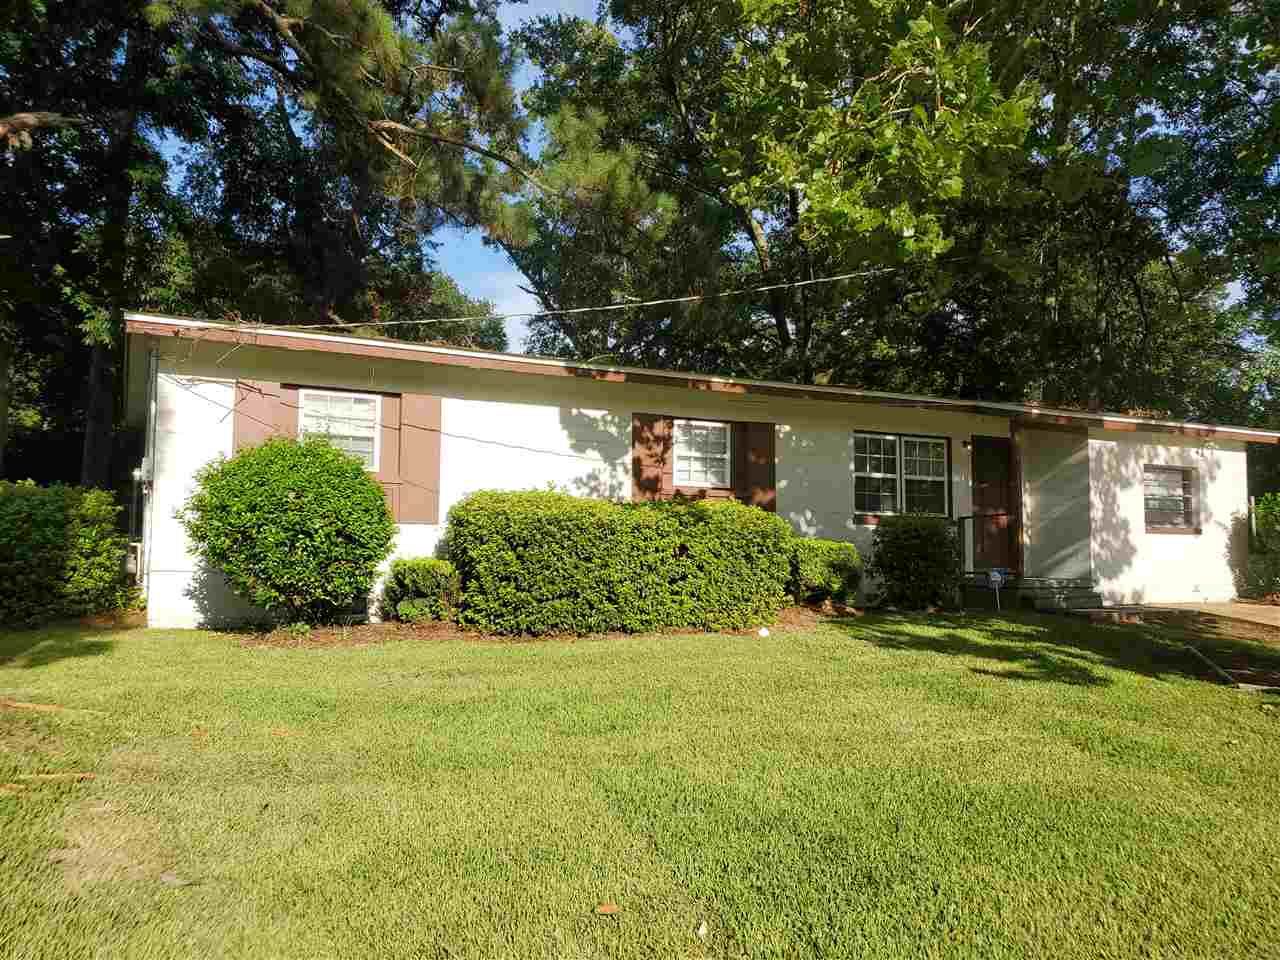 3/1 Home with  BONUS ROOM for study or just more living space Hardwood Floors,  W/D, Dishwasher, Fenced Yard with Large Deck. Currently rented for $1,135 . Lease expires 7/37/2021  Minutes From FSU FAMU and TCC. Potential to be Easily renovated to a 4/2.